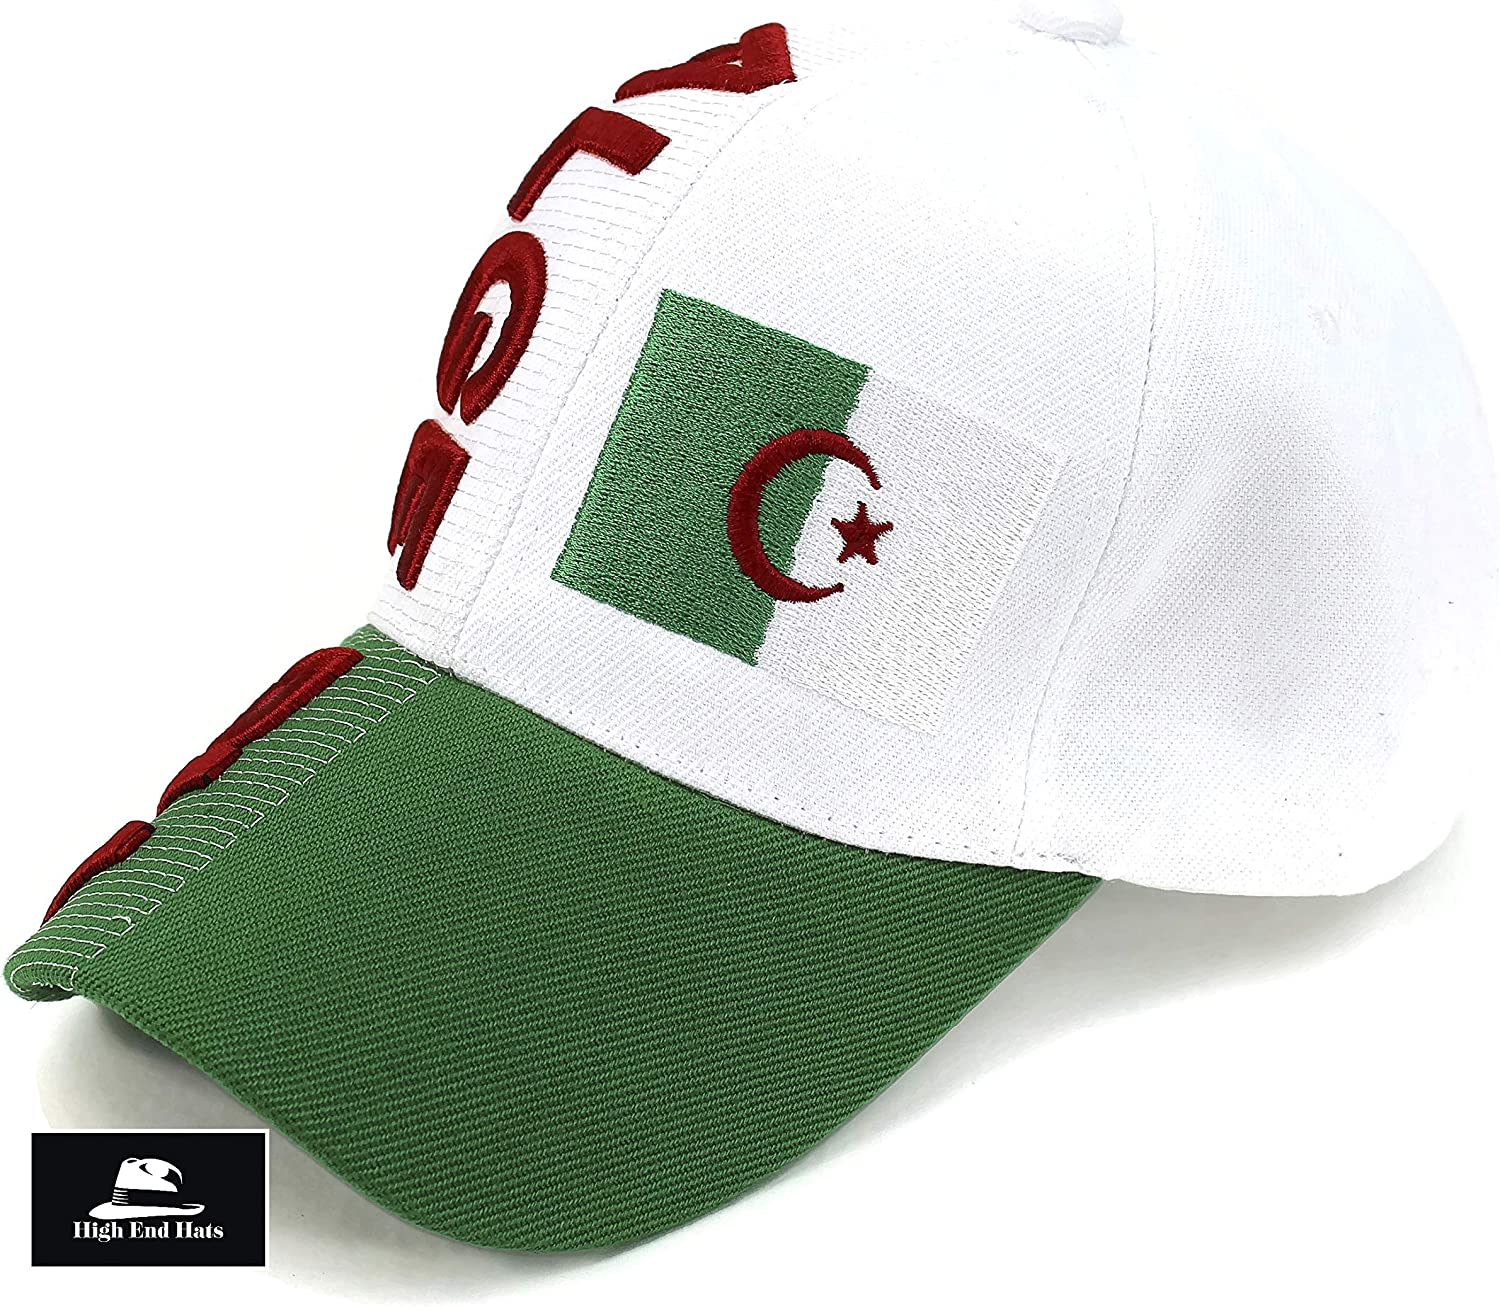 """Black High End Hats /""""Nations of Africa Hat Collection/"""" 3D Embroidered Adjustable Baseball Cap Egypt with Coat of Arms"""